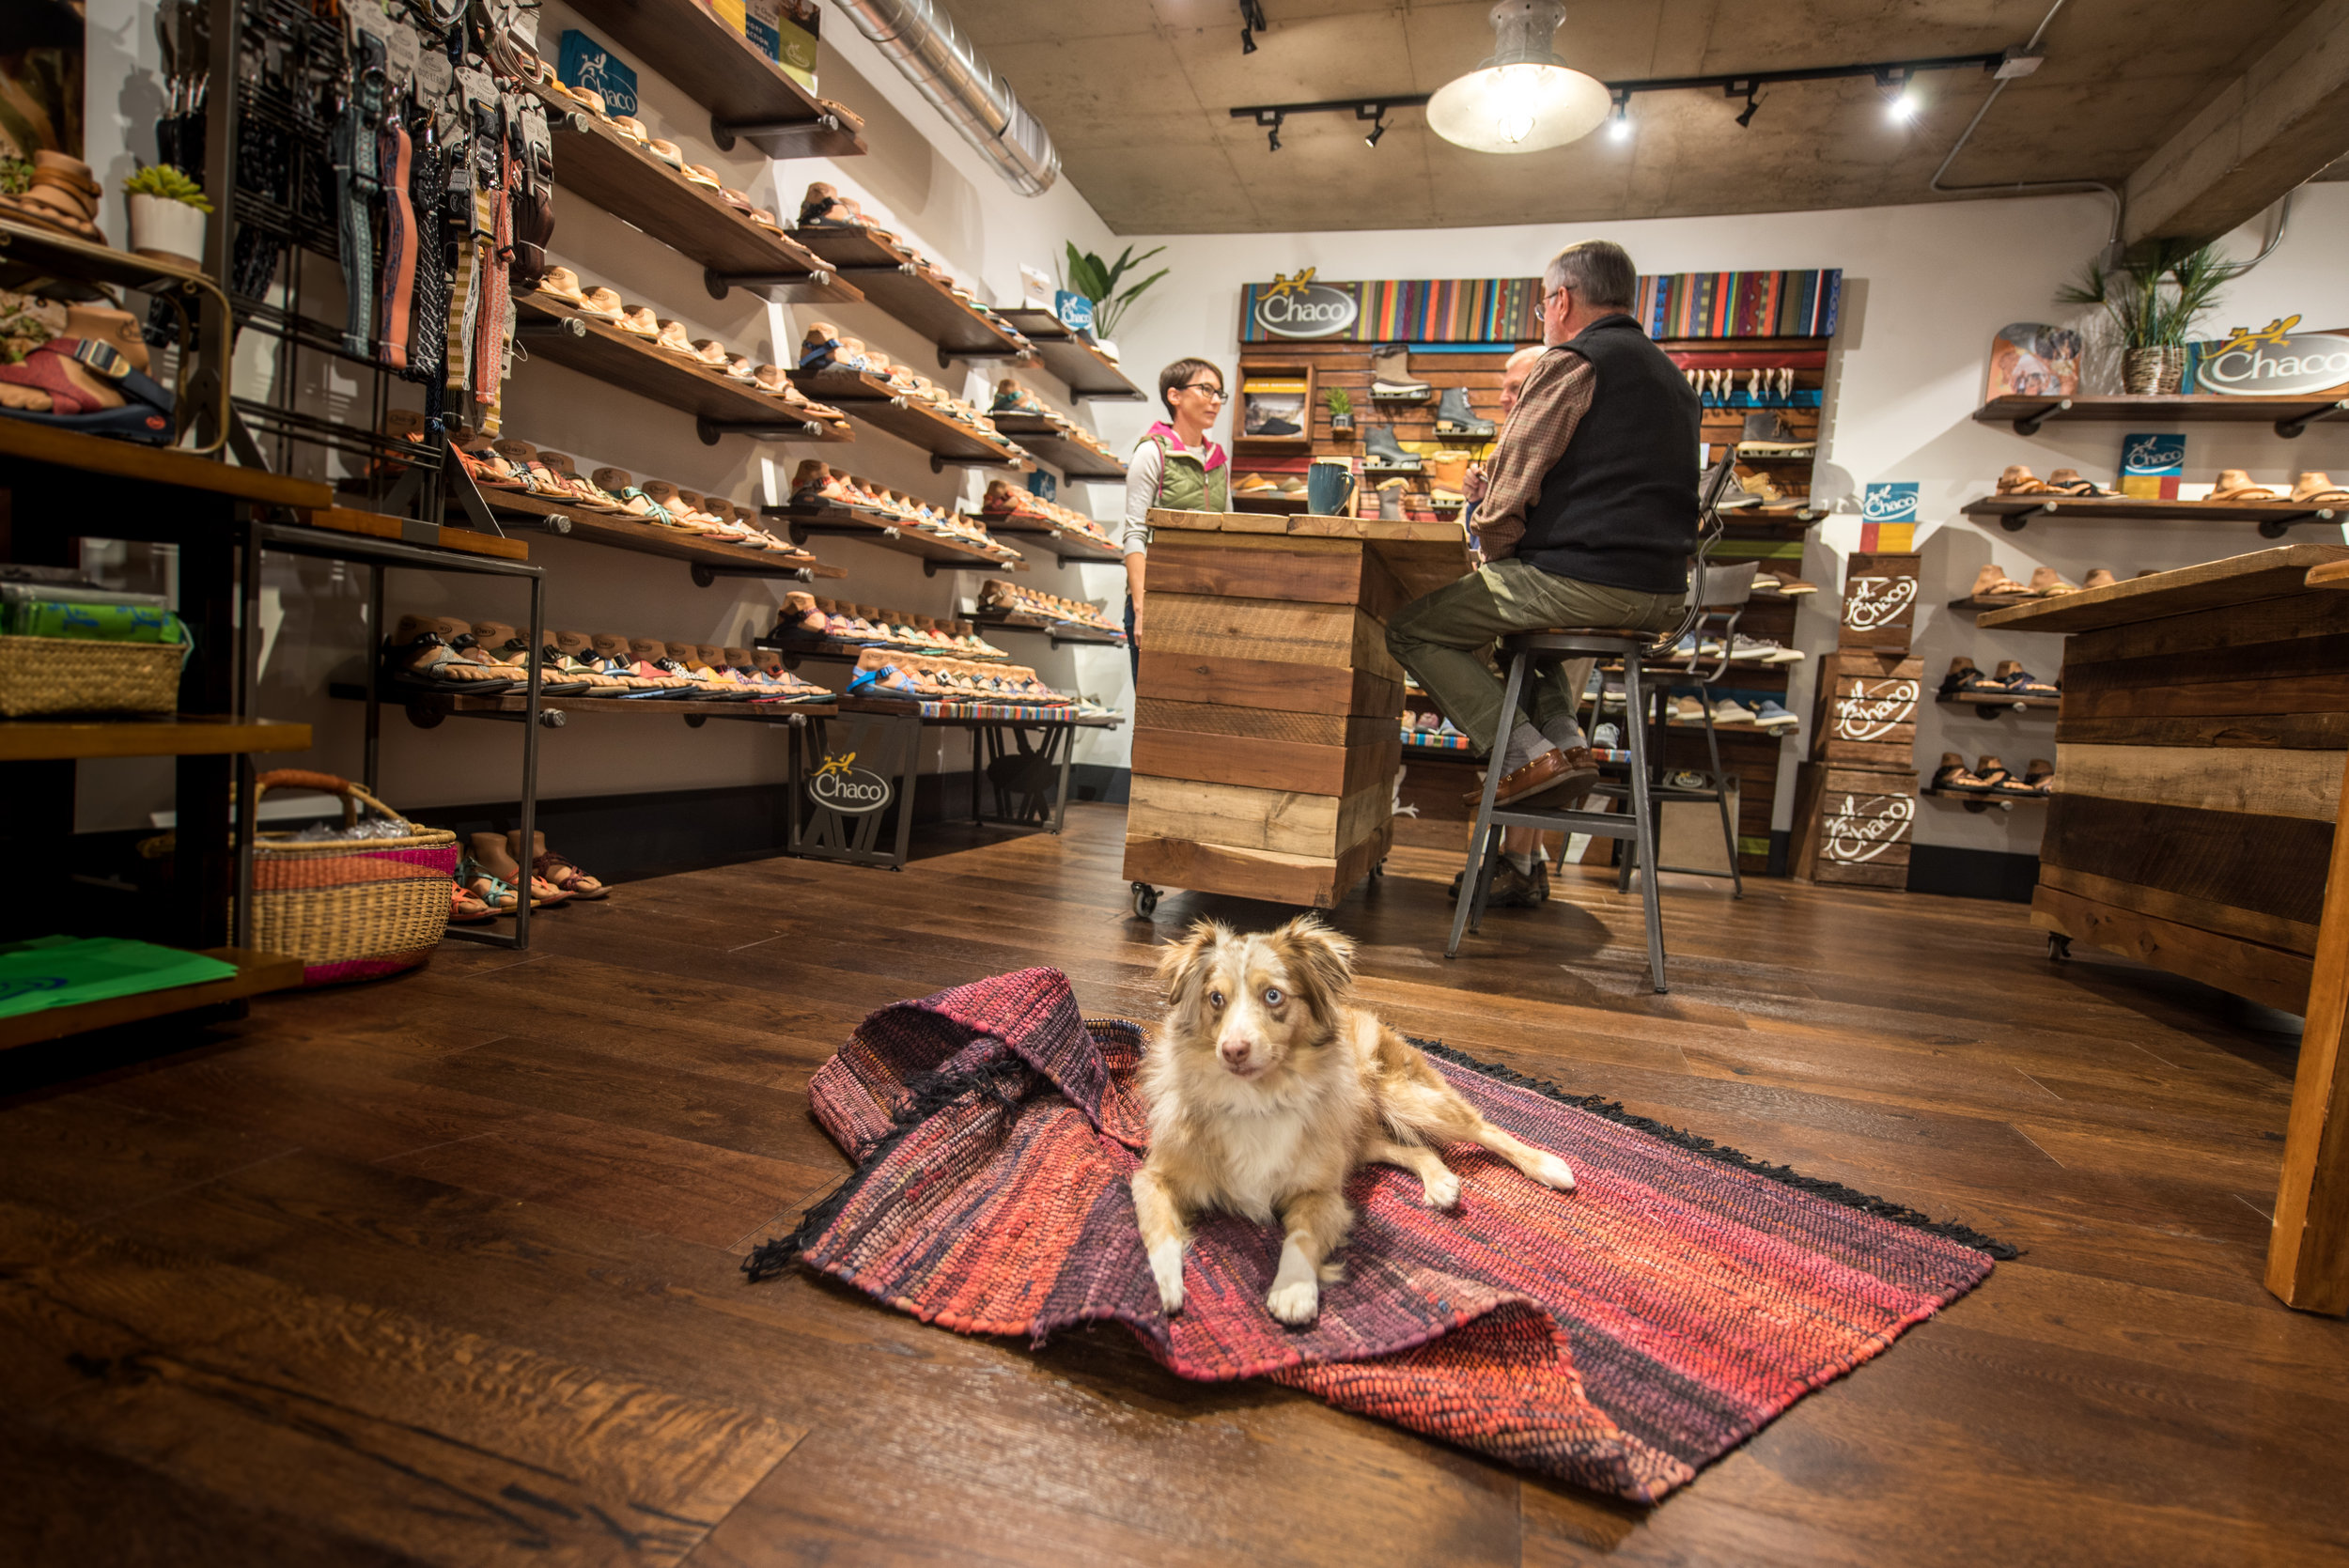 Welcome to the Outdoor Sports Marketing show room where all are welcome including furry friends.